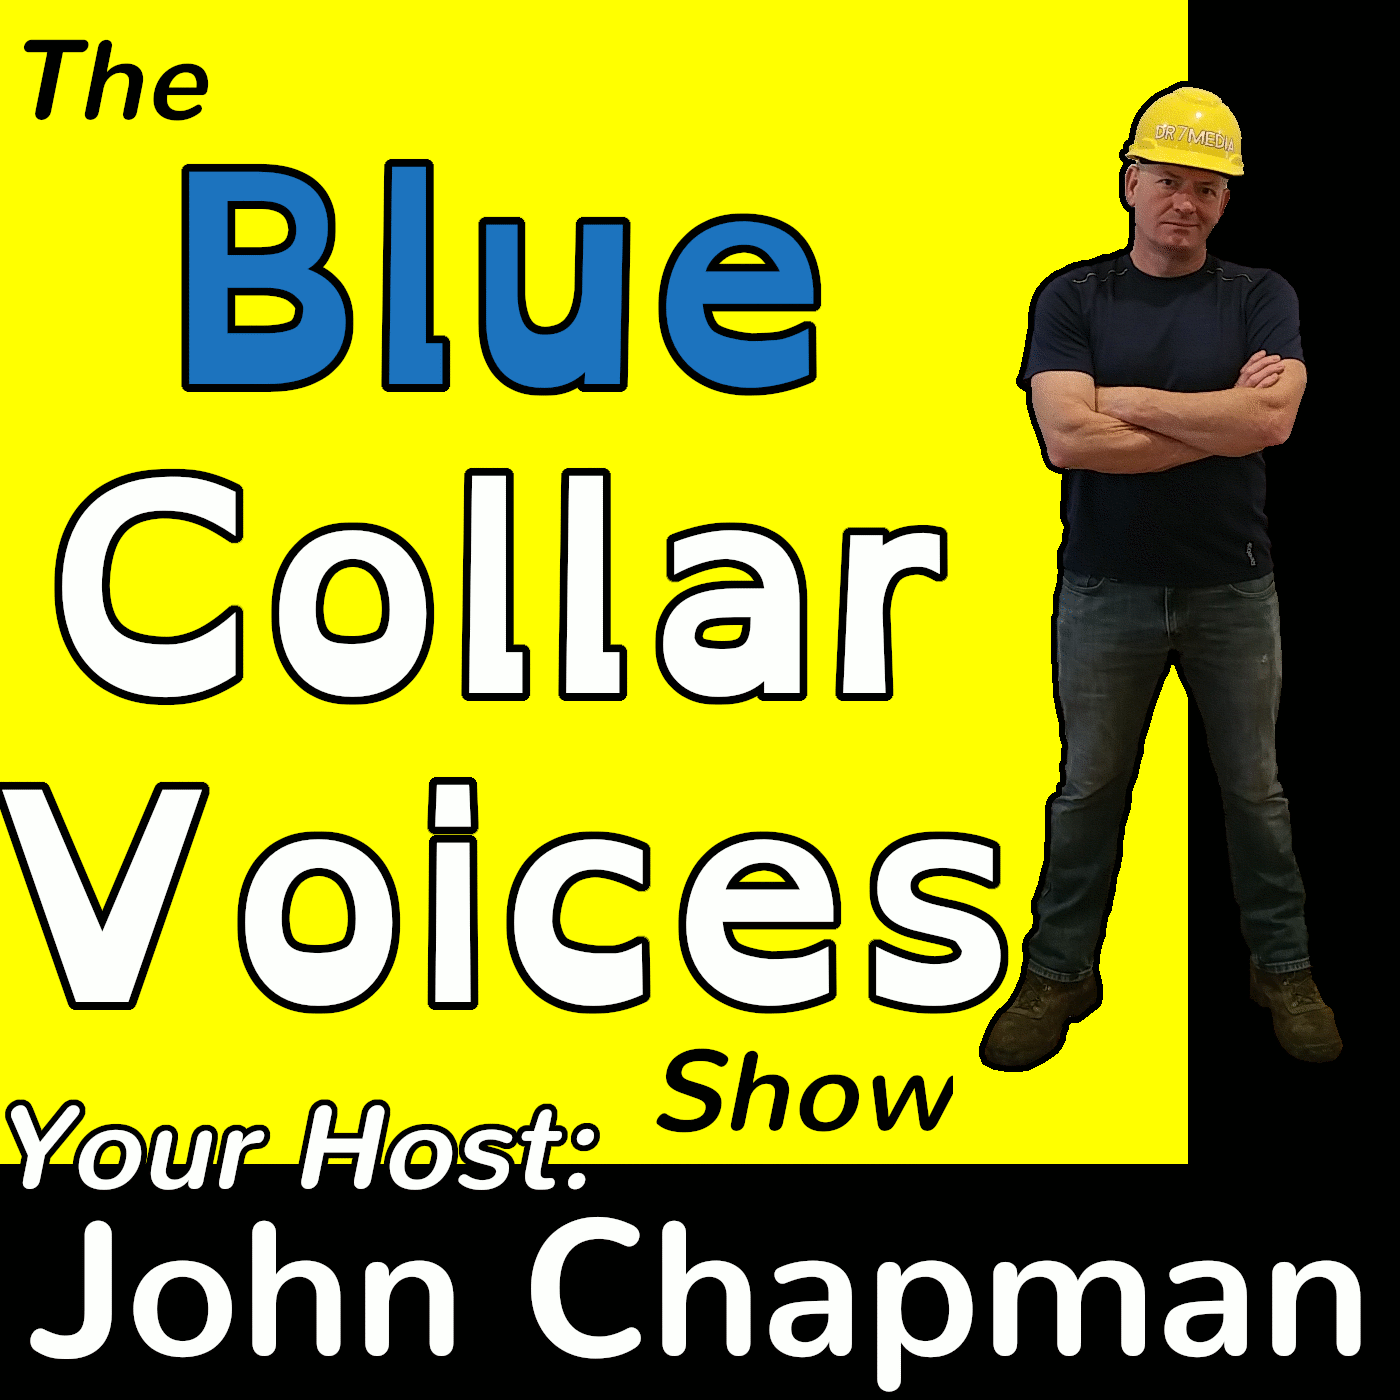 The Blue Collar Voices Show